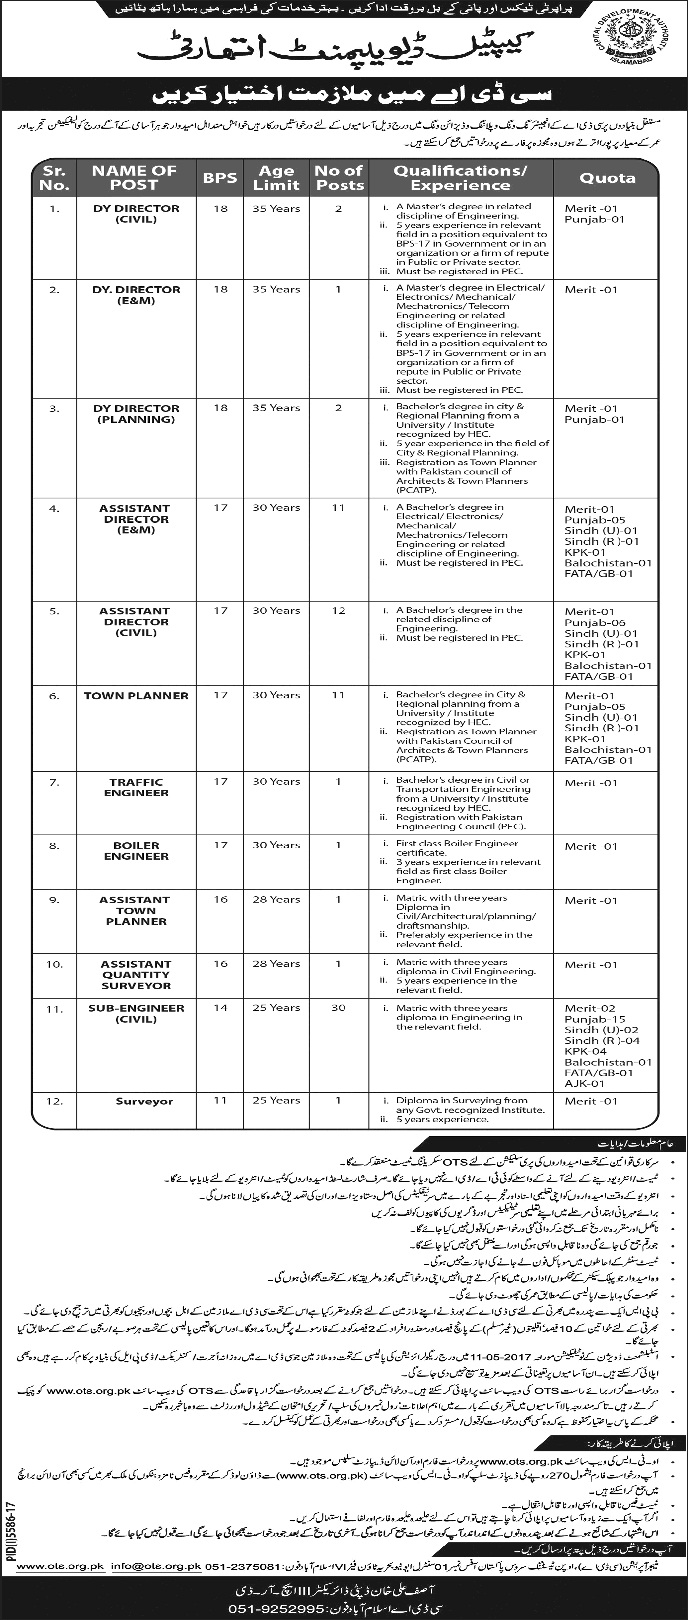 Capital Development Authority Islamabad 74 Jobs Daily Ausaf Newspaper 10 April 2018